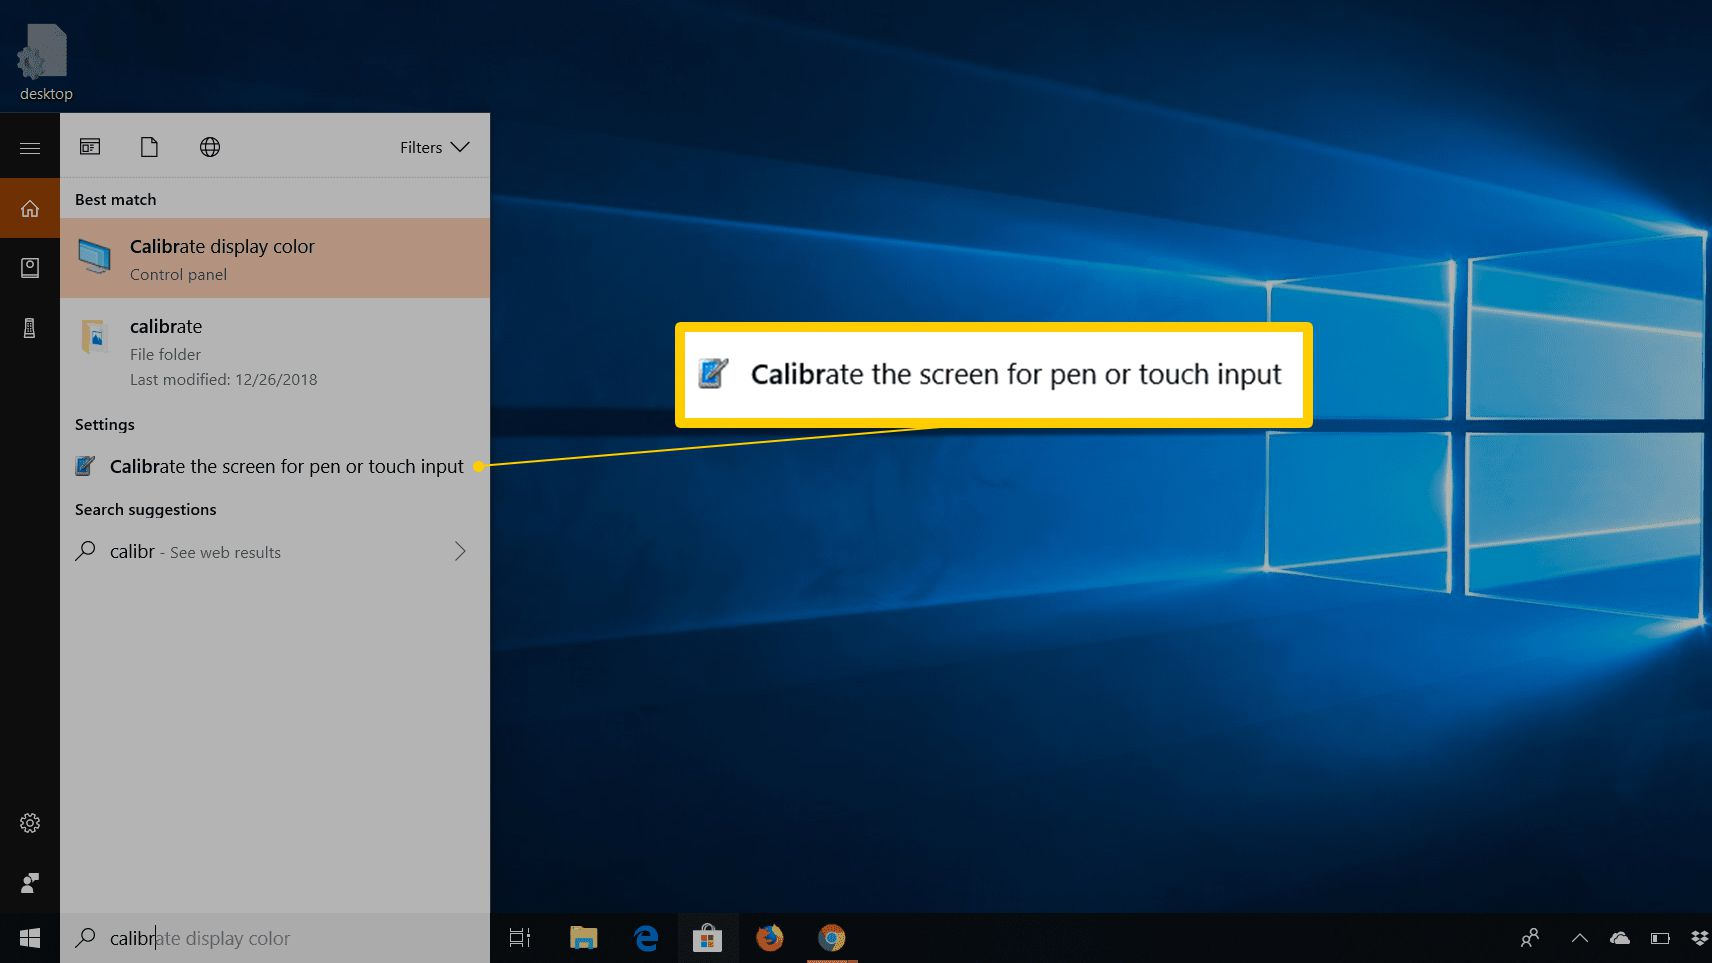 How to Calibrate A Touch-Enabled Display in Windows